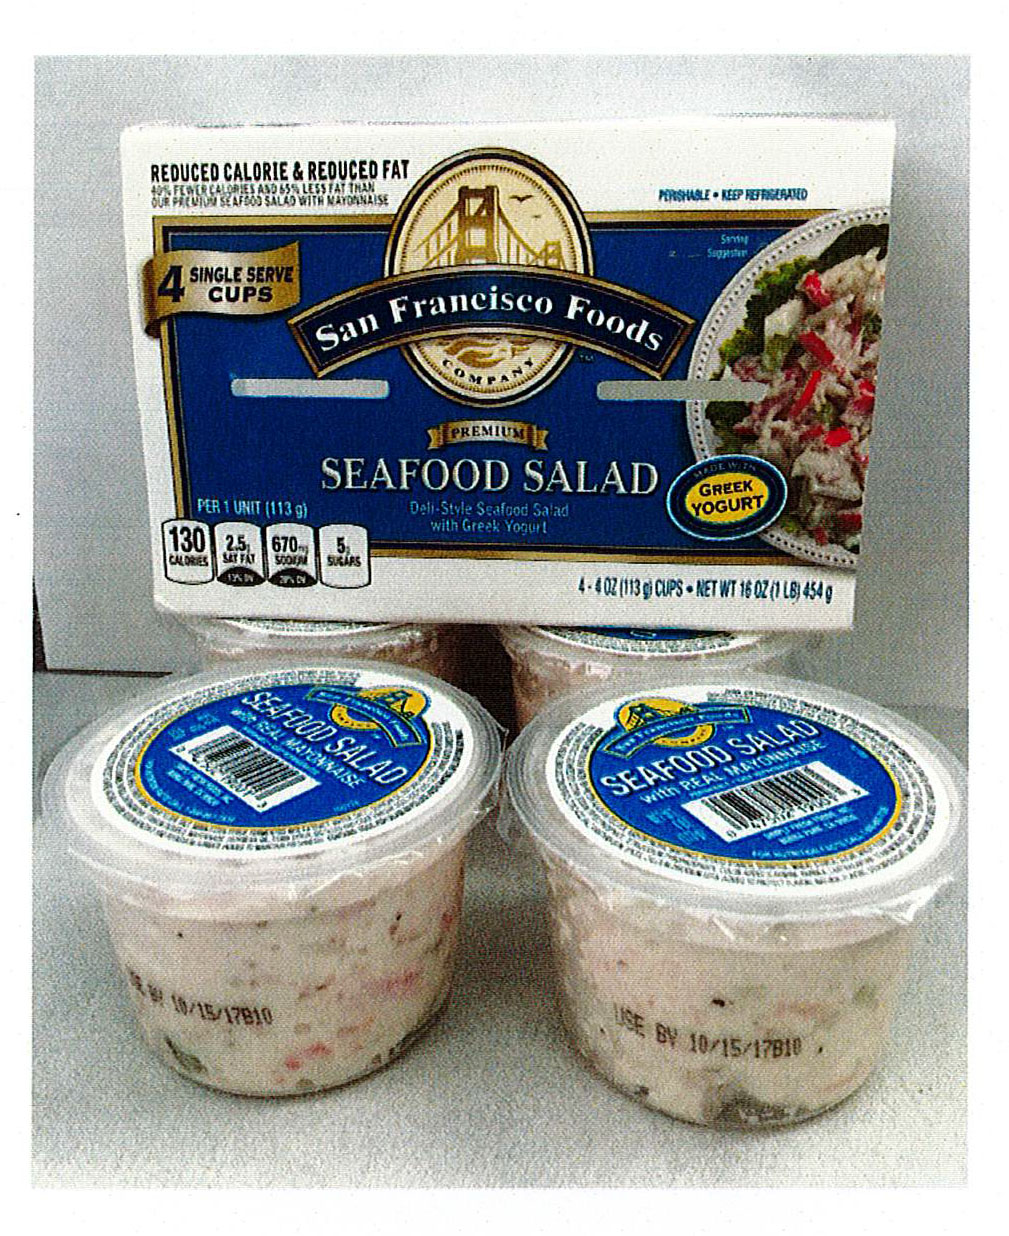 Simply Fresh Foods, Inc. Issues Allergy Alert on Undeclared Milk in Single Serve Cups of San Francisco Seafood Salad Made with Greek Yogurt